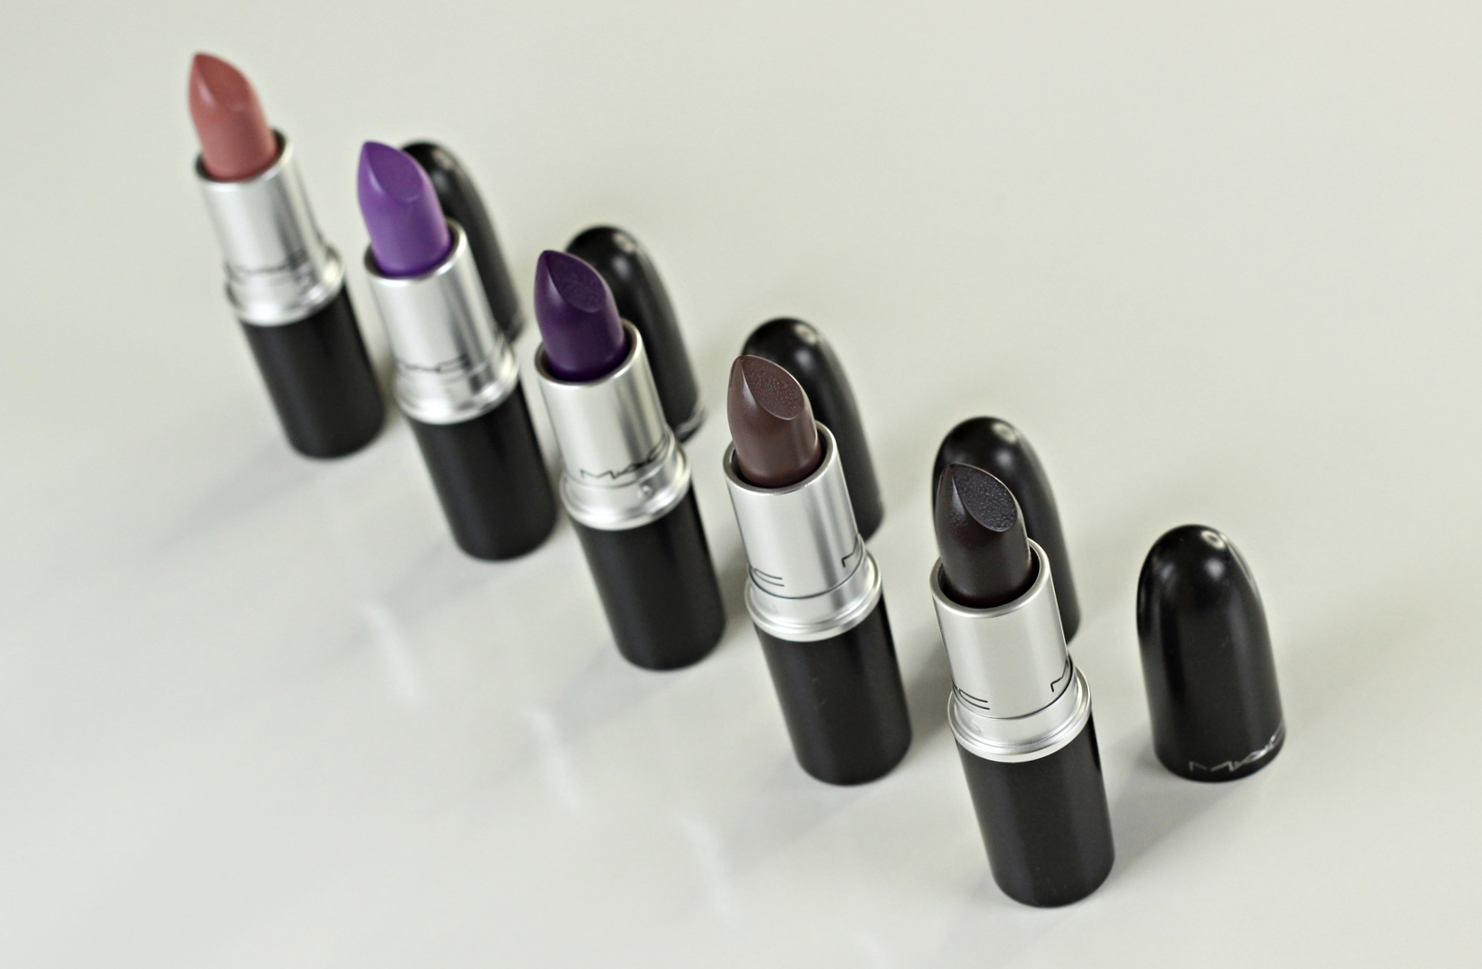 Mac Bangin' Brilliant: added five new lipsticks to my collection